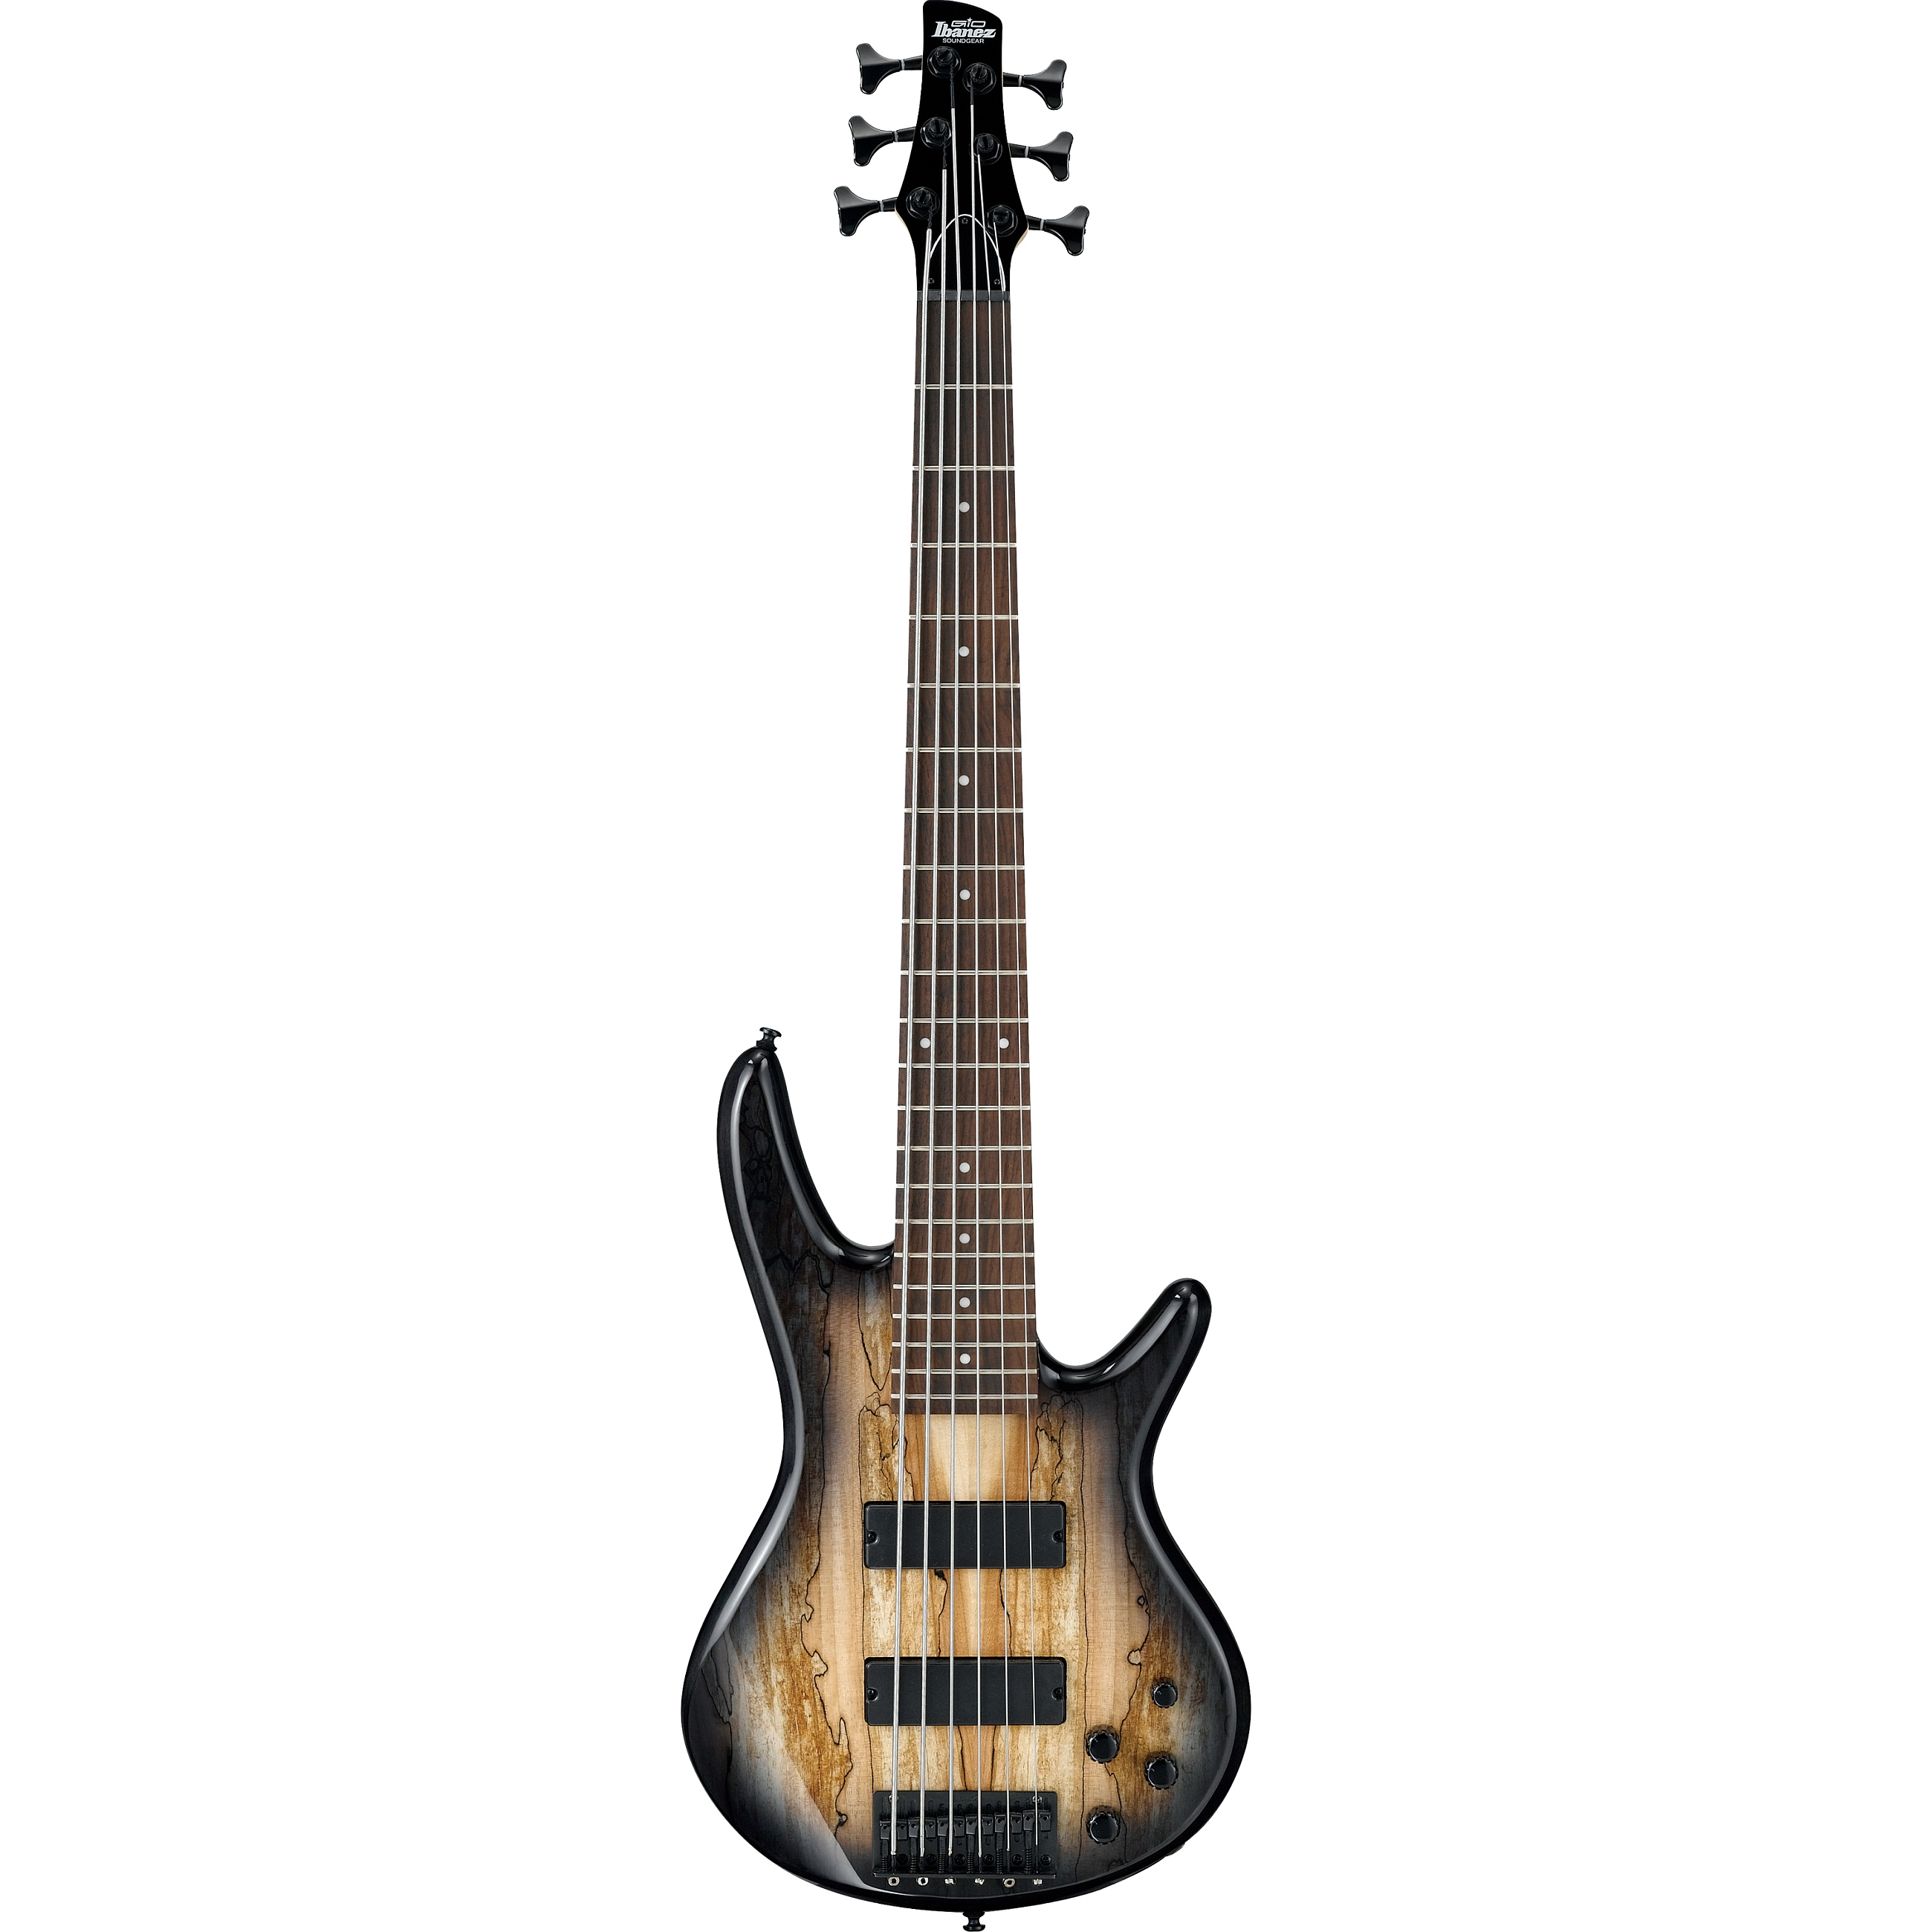 Ibanez GSR206SM 6-String Natural Gray Burst